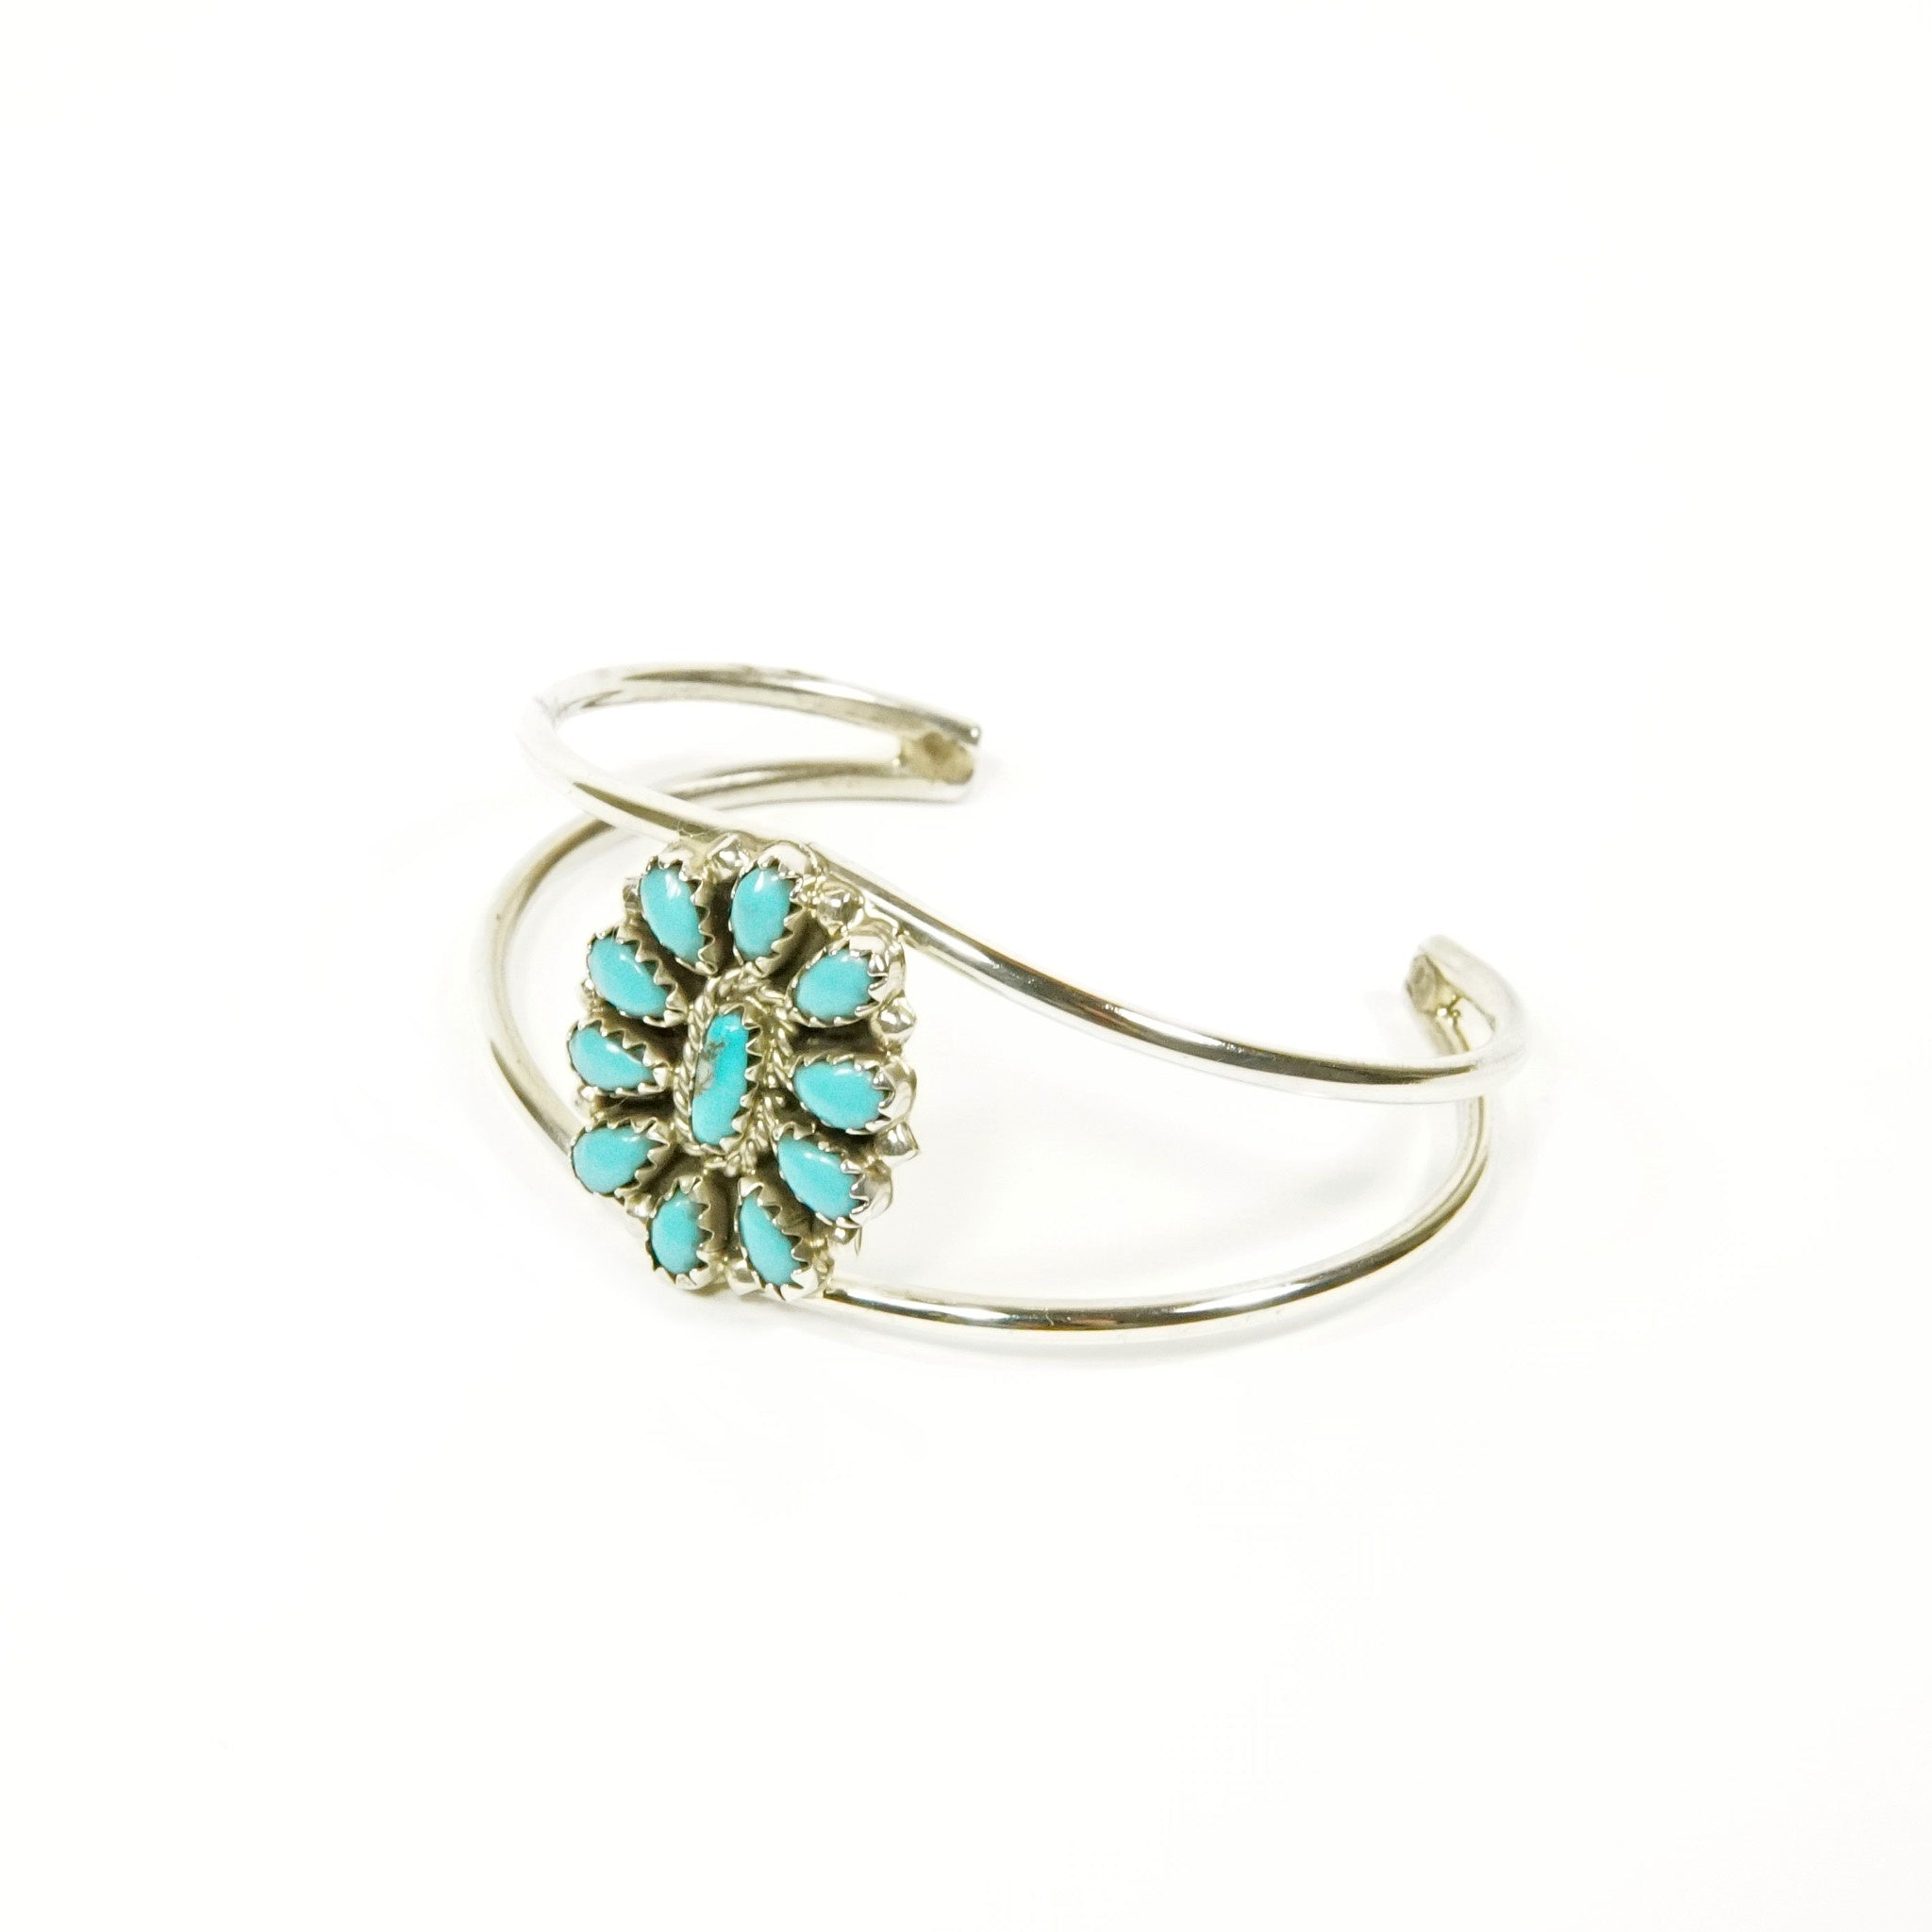 Kingman Turquoise Bracelet by Jeffery James